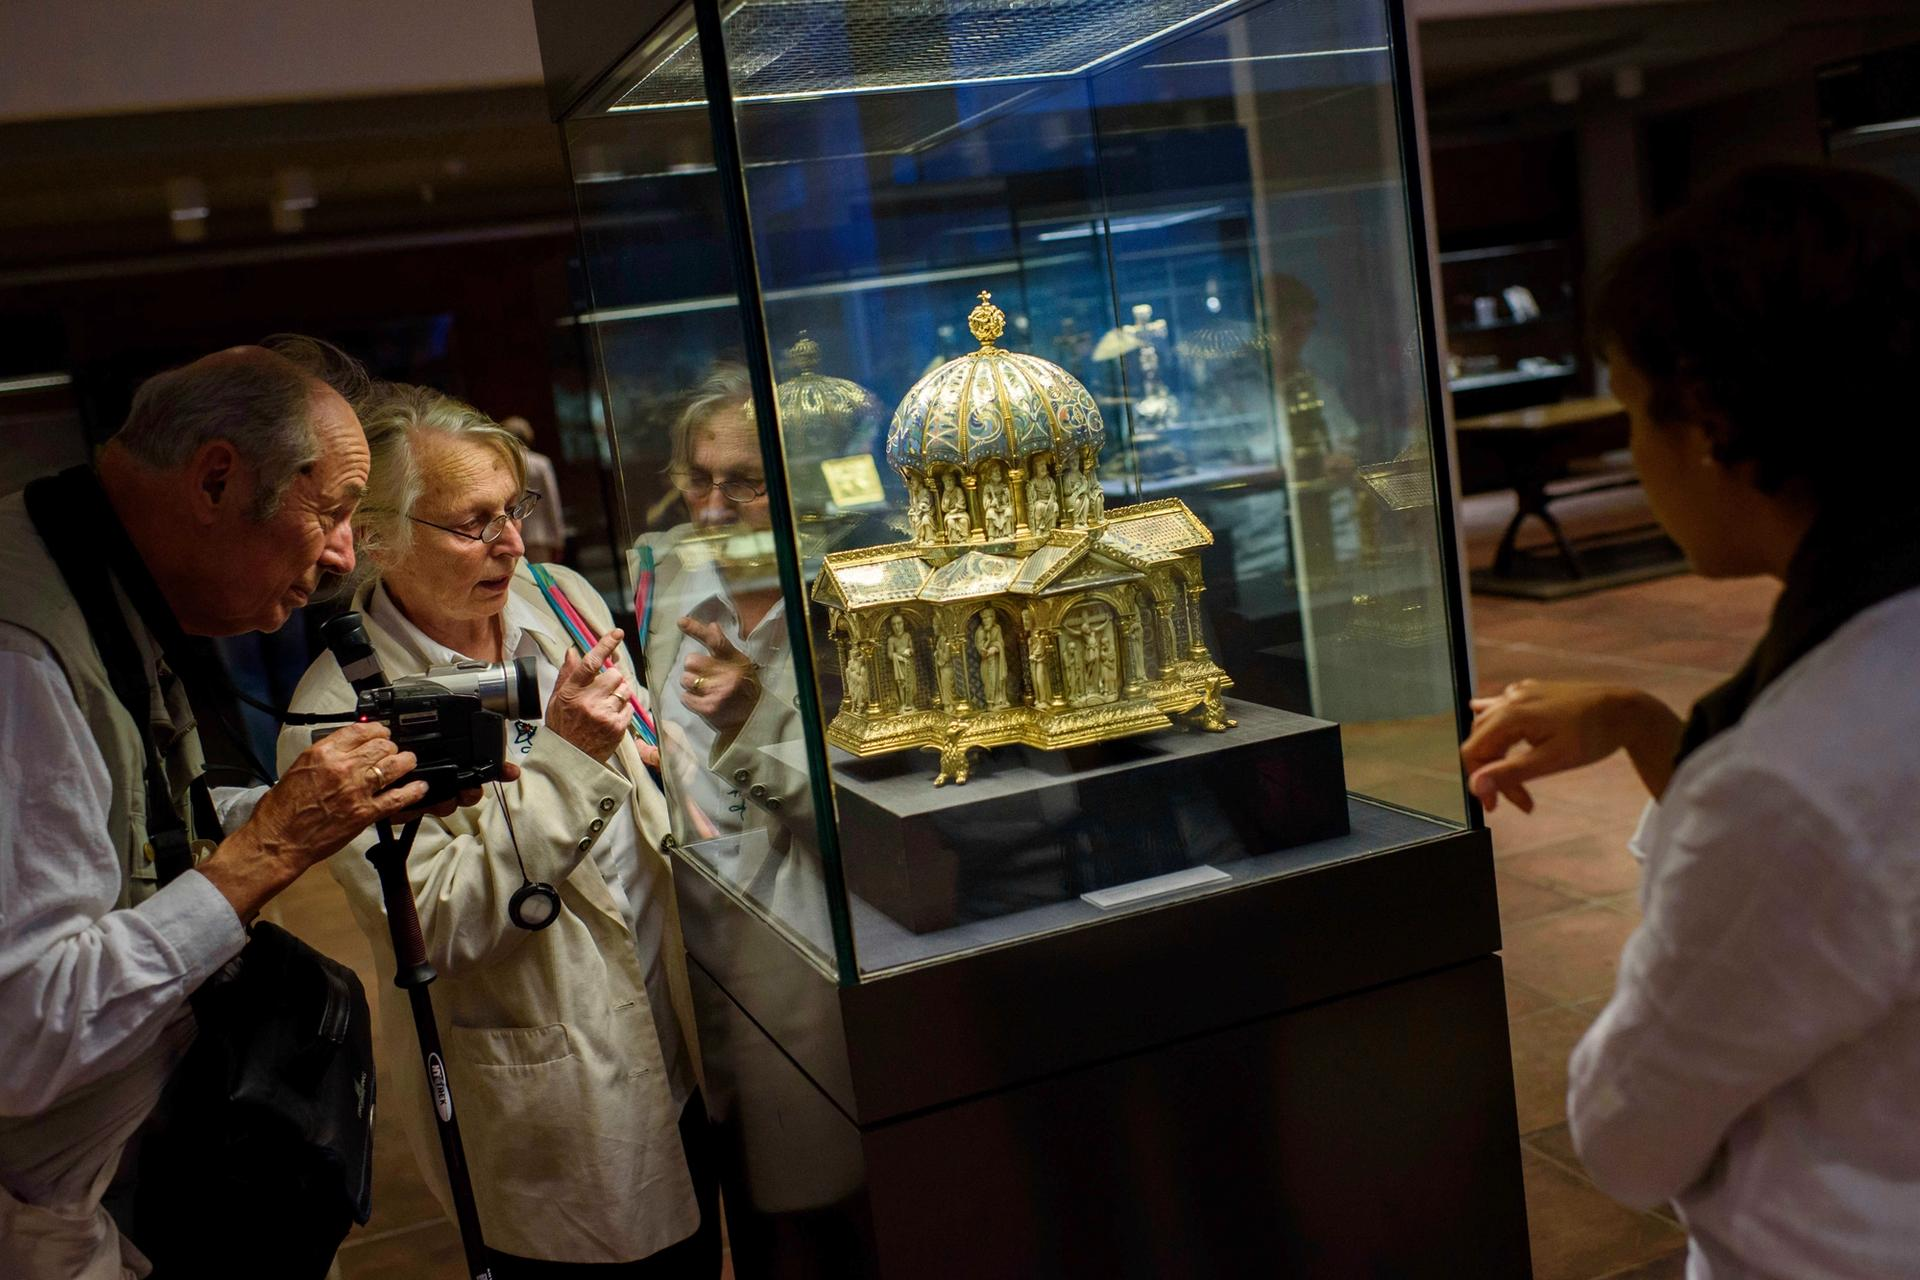 Visitors at the Kunstgewerbemuseum in Berlin view a piece of the Guelph Treasure Photo by: Gregor Fischer/picture-alliance/dpa/AP Images